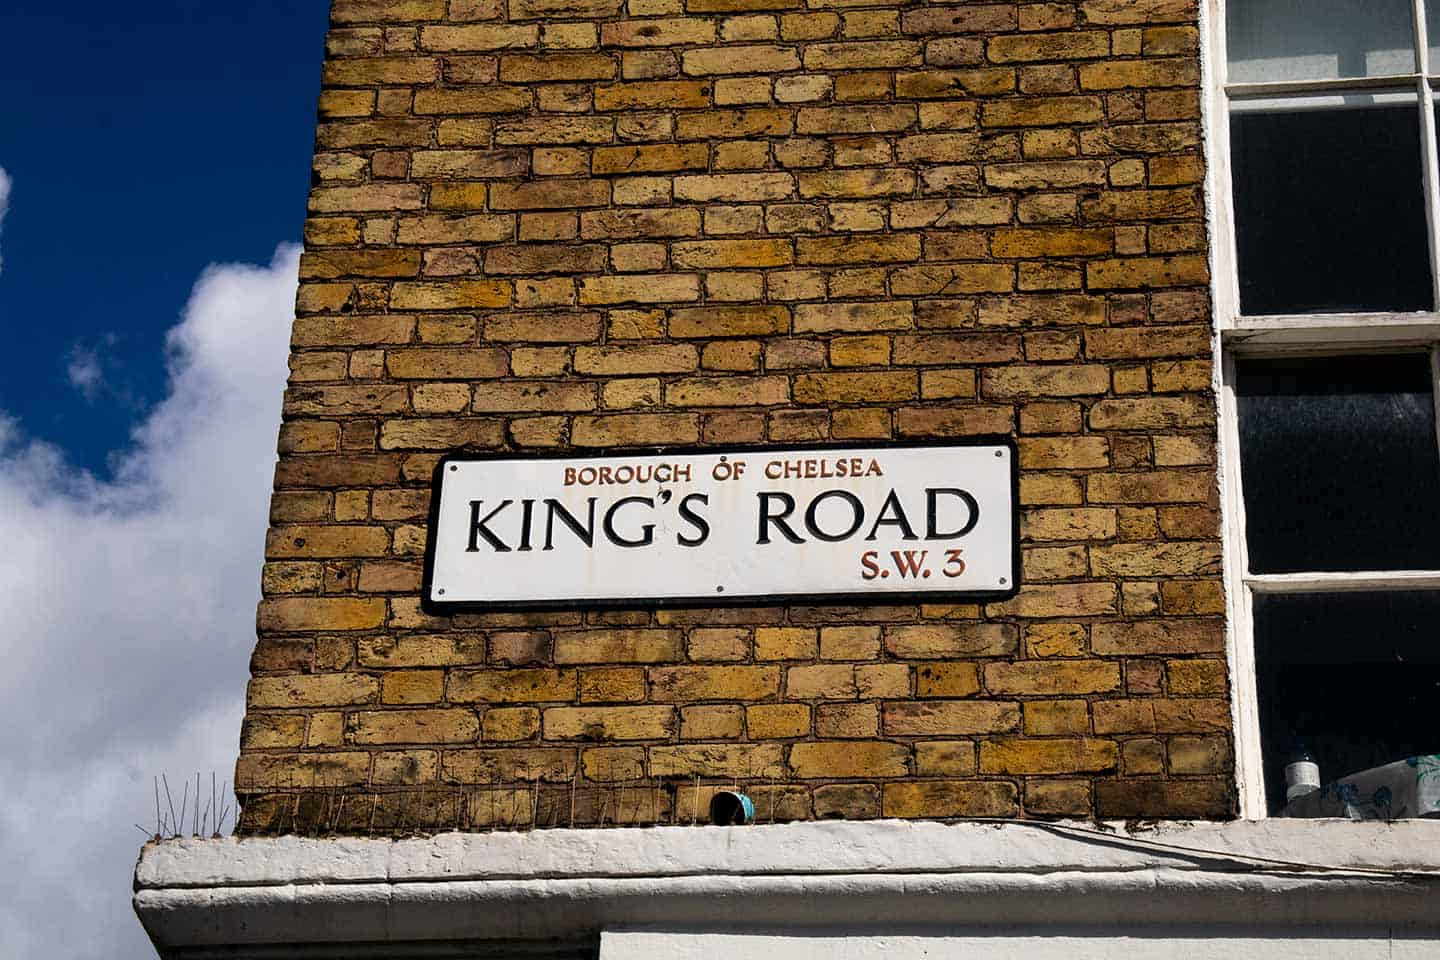 Image of a King's Road street sign in Chelsea, London